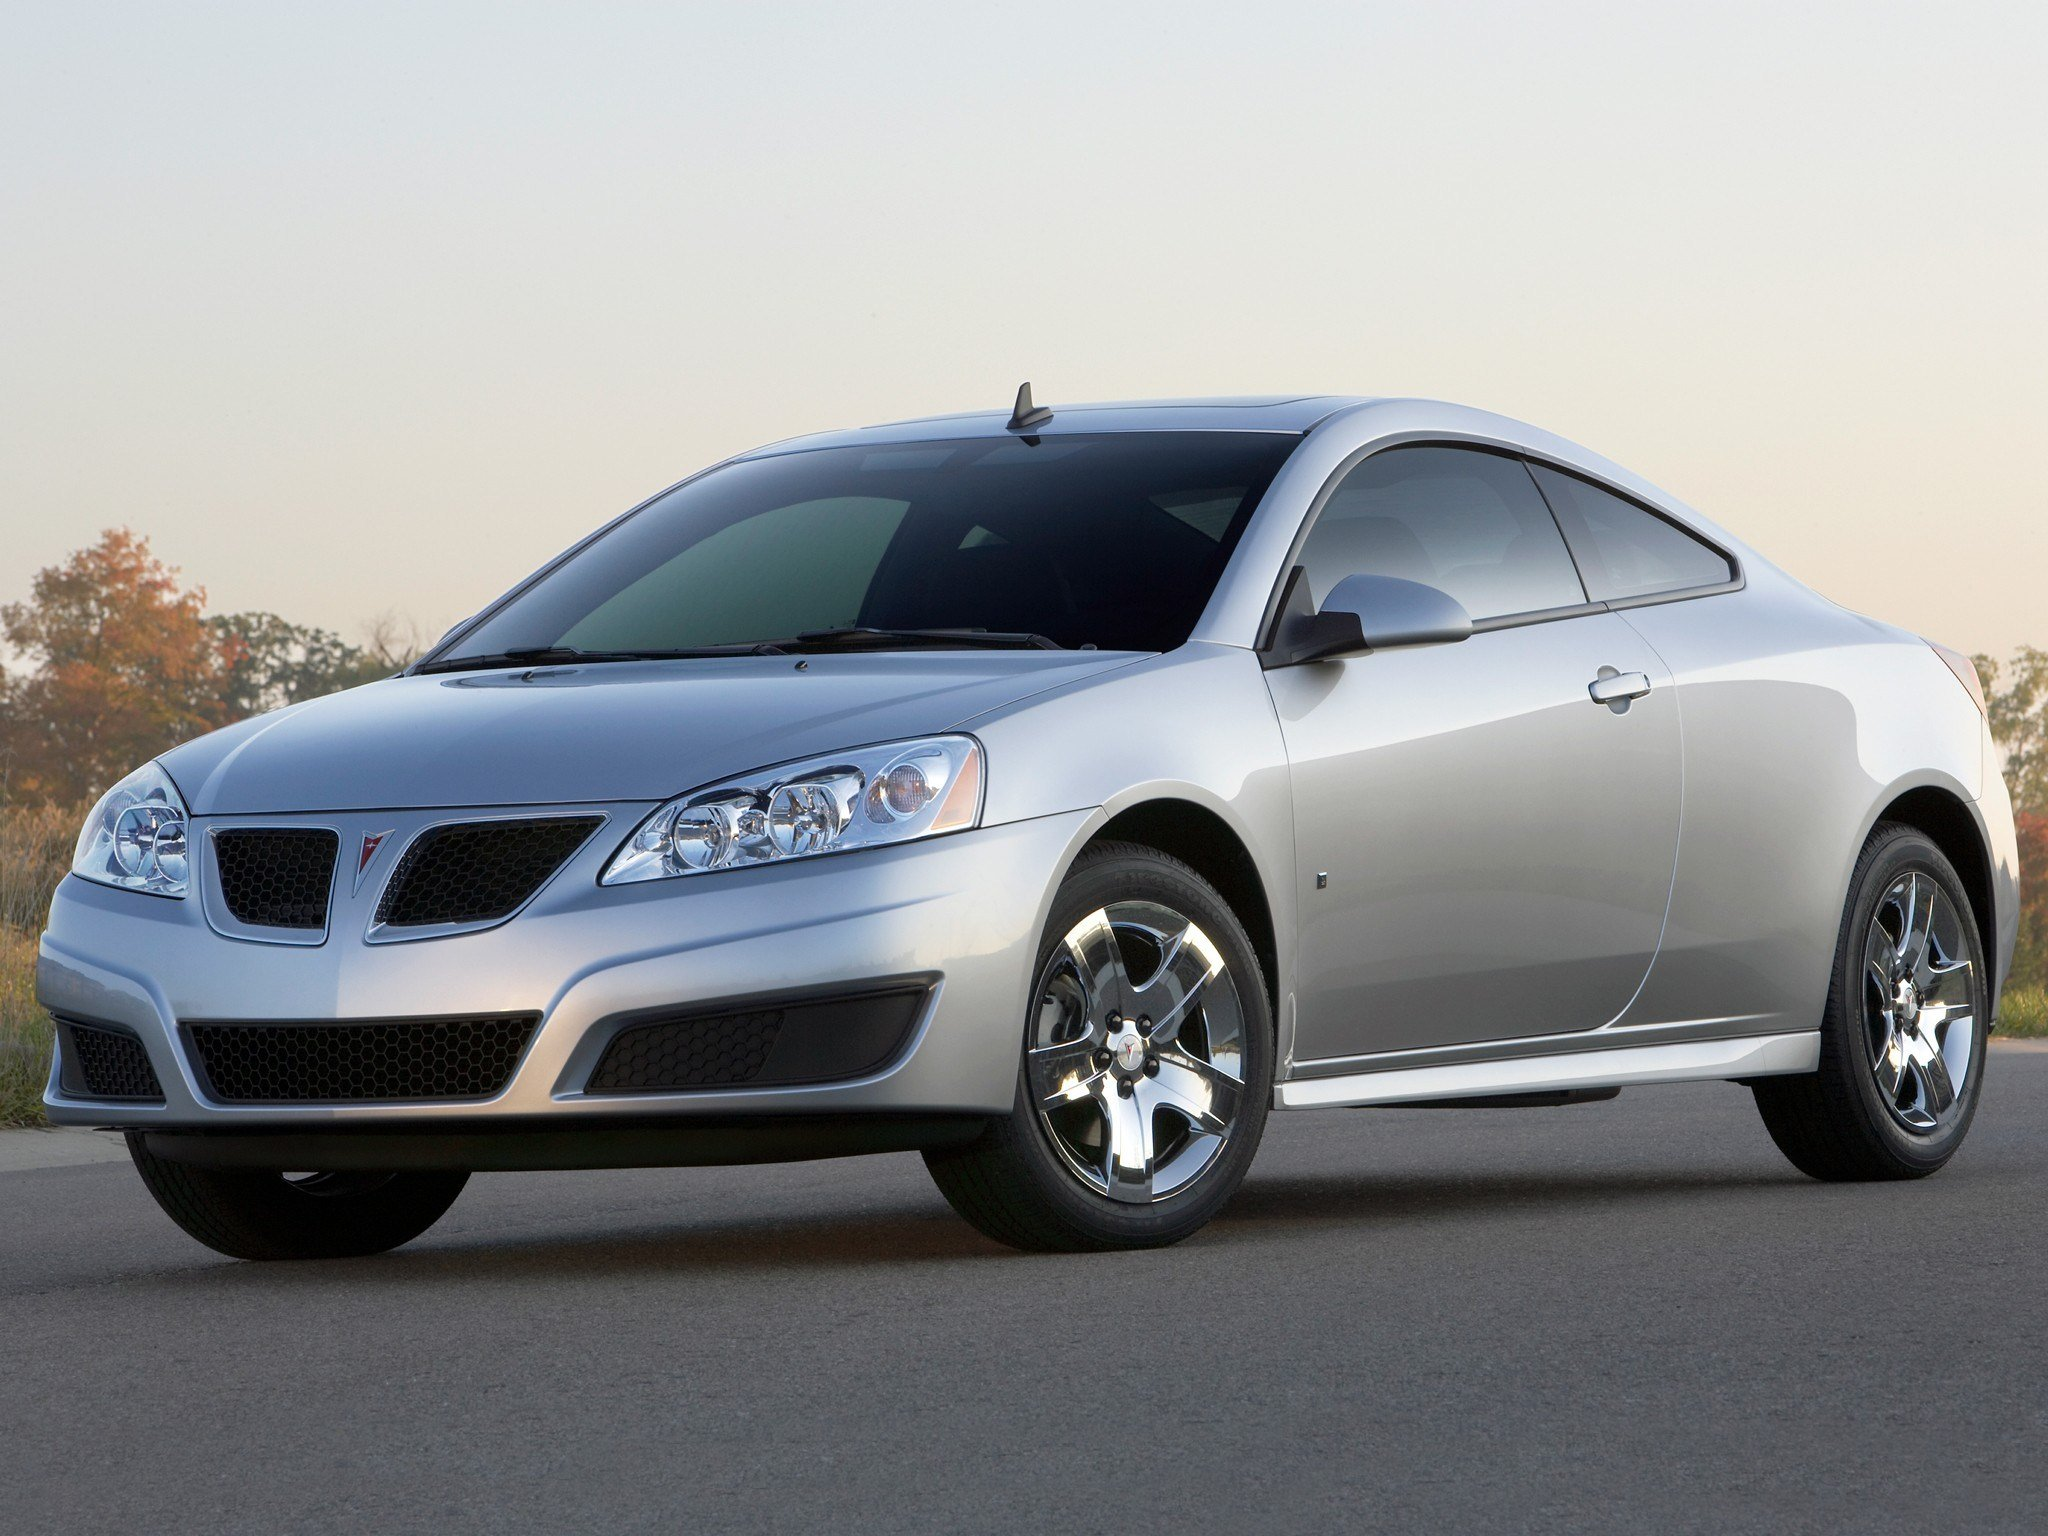 New Pontiac G6 Coupe Specs 2008 2009 2010 Autoevolution On This Month